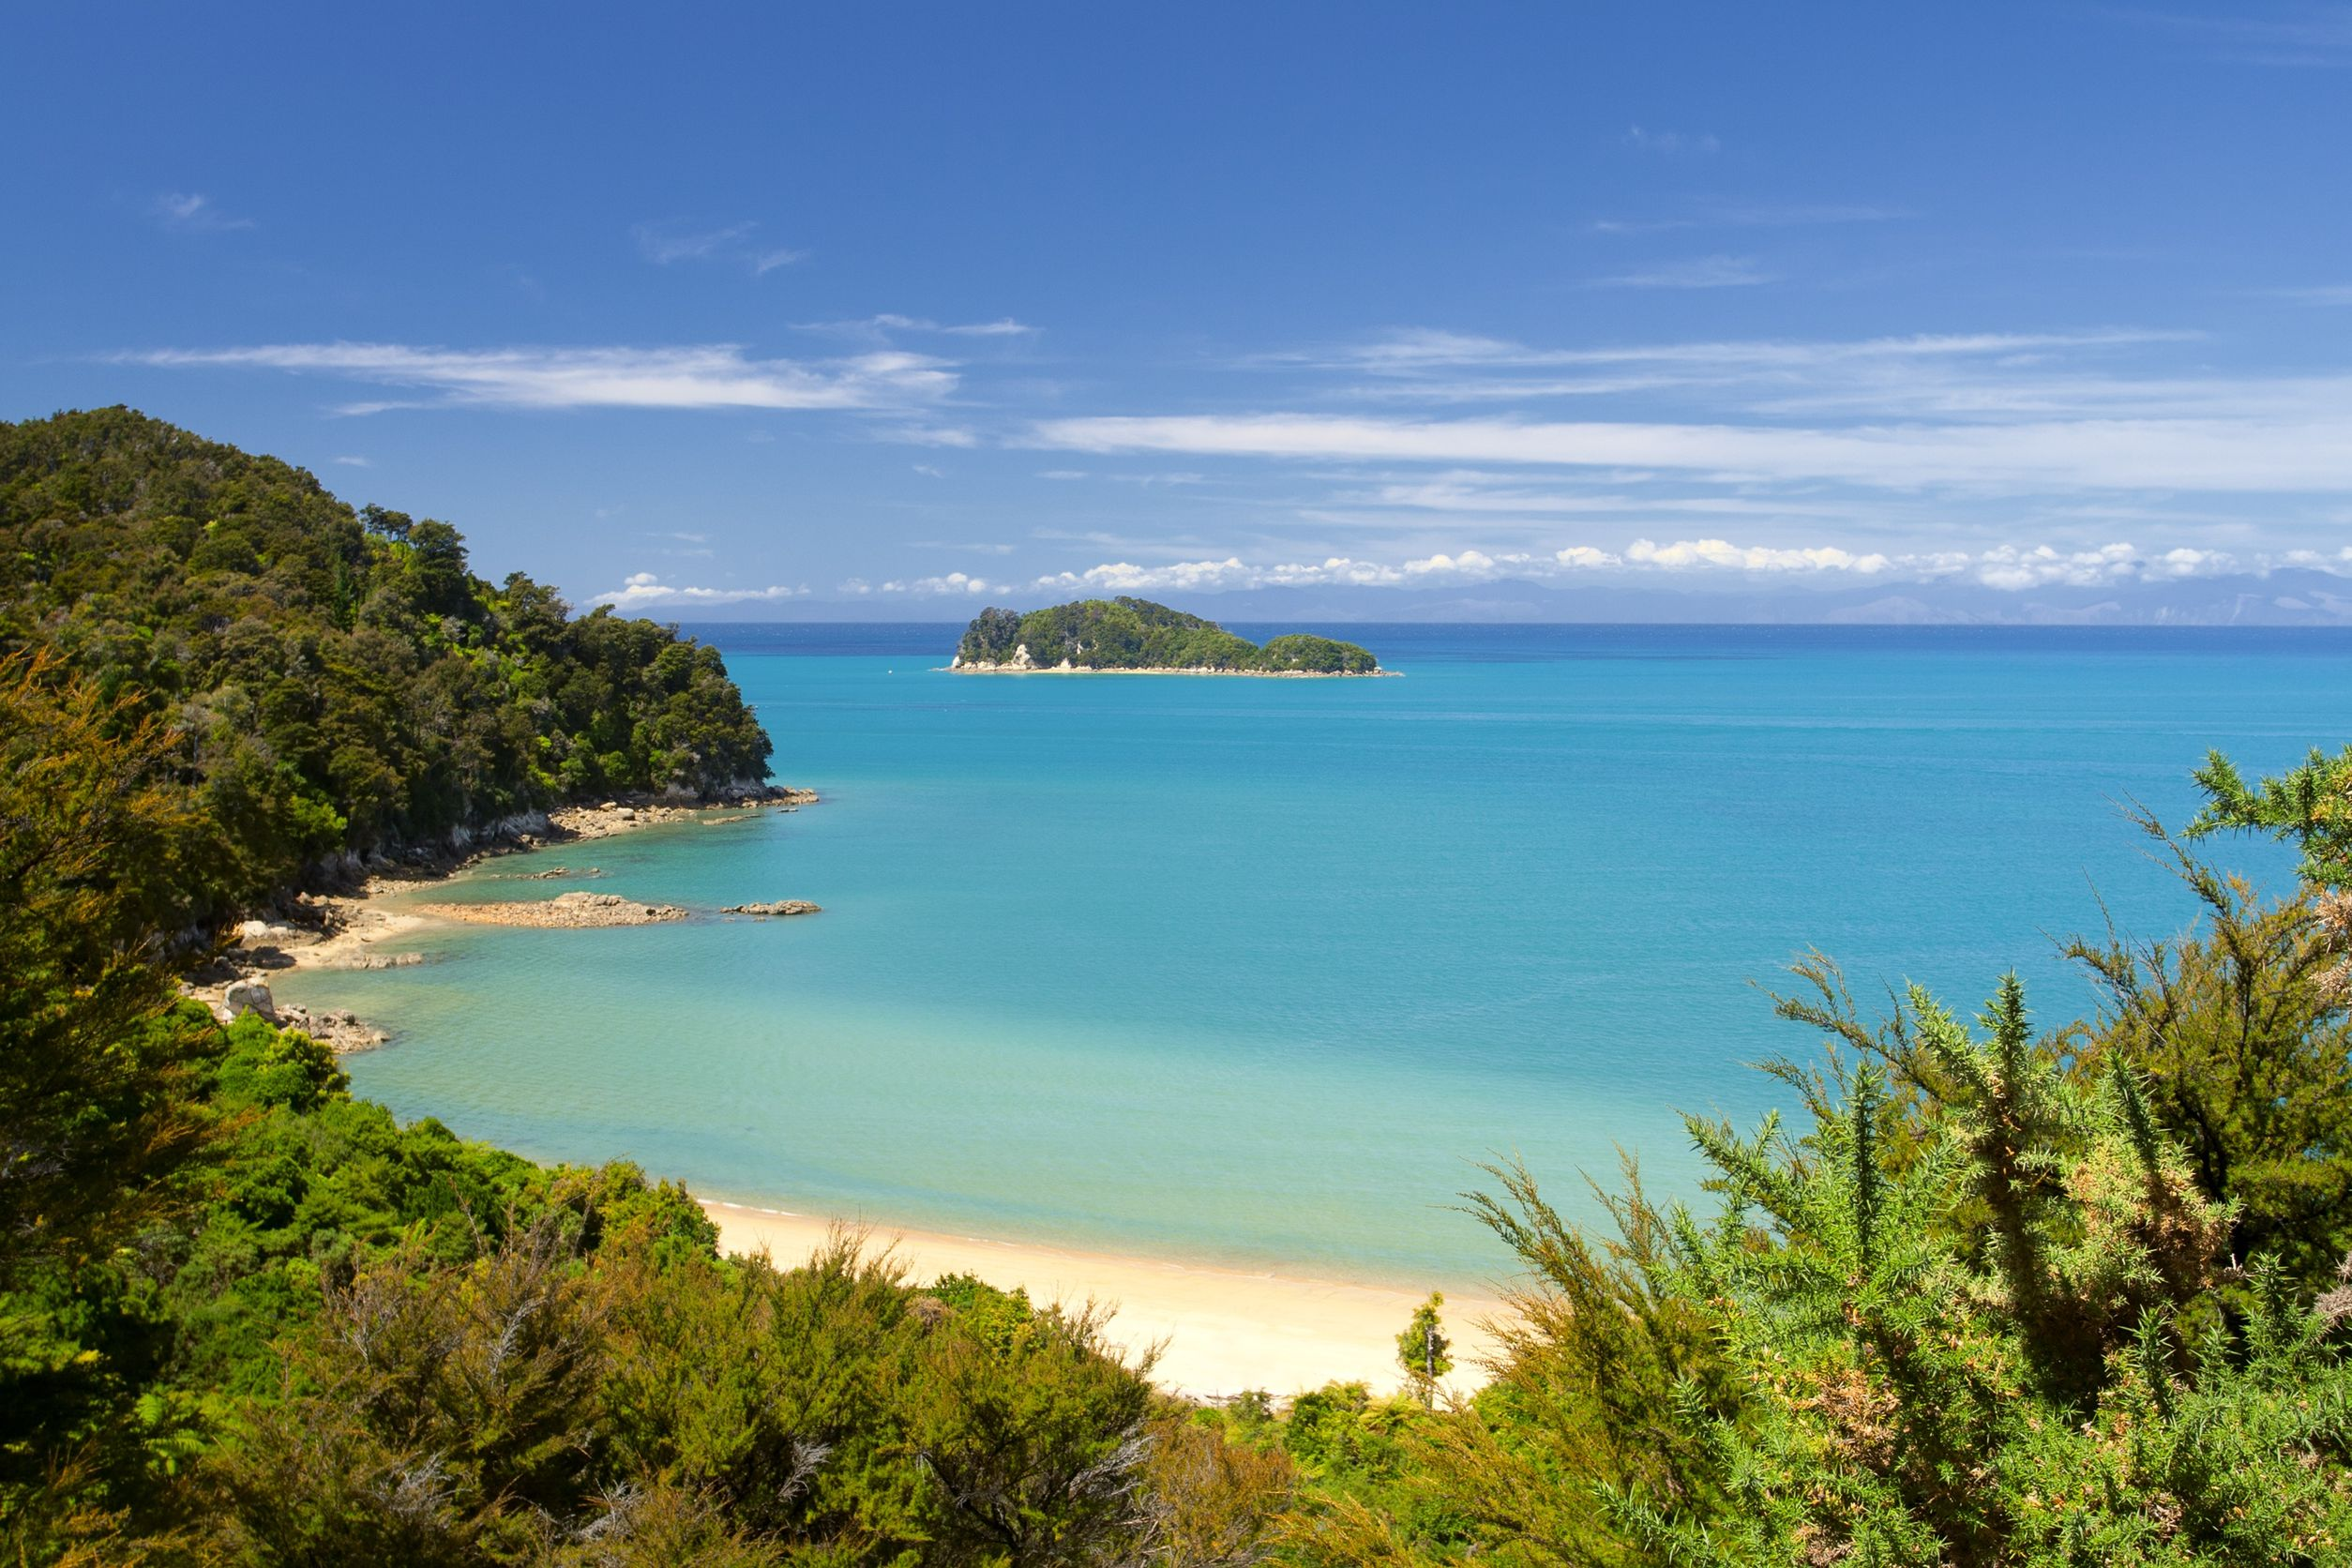 new zealand clearwater bay 123rf